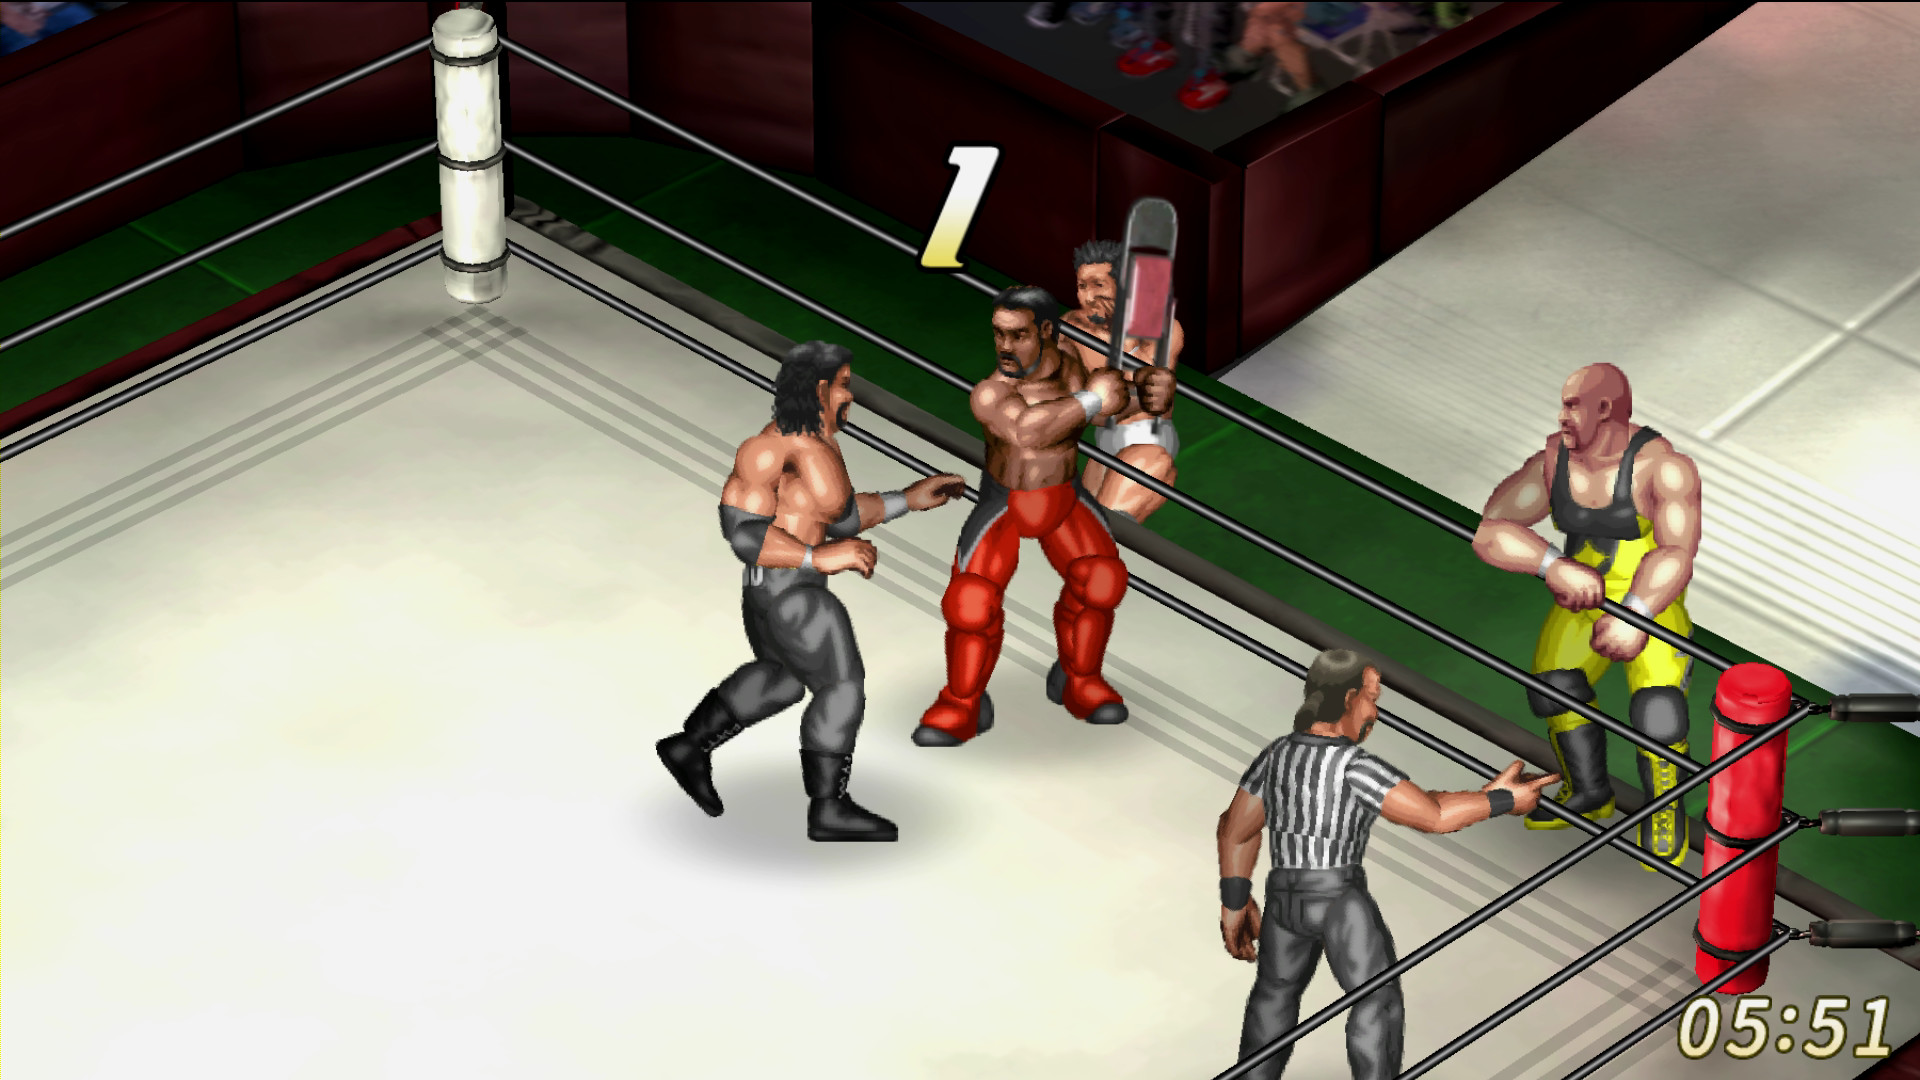 Find the best laptop for FPWW